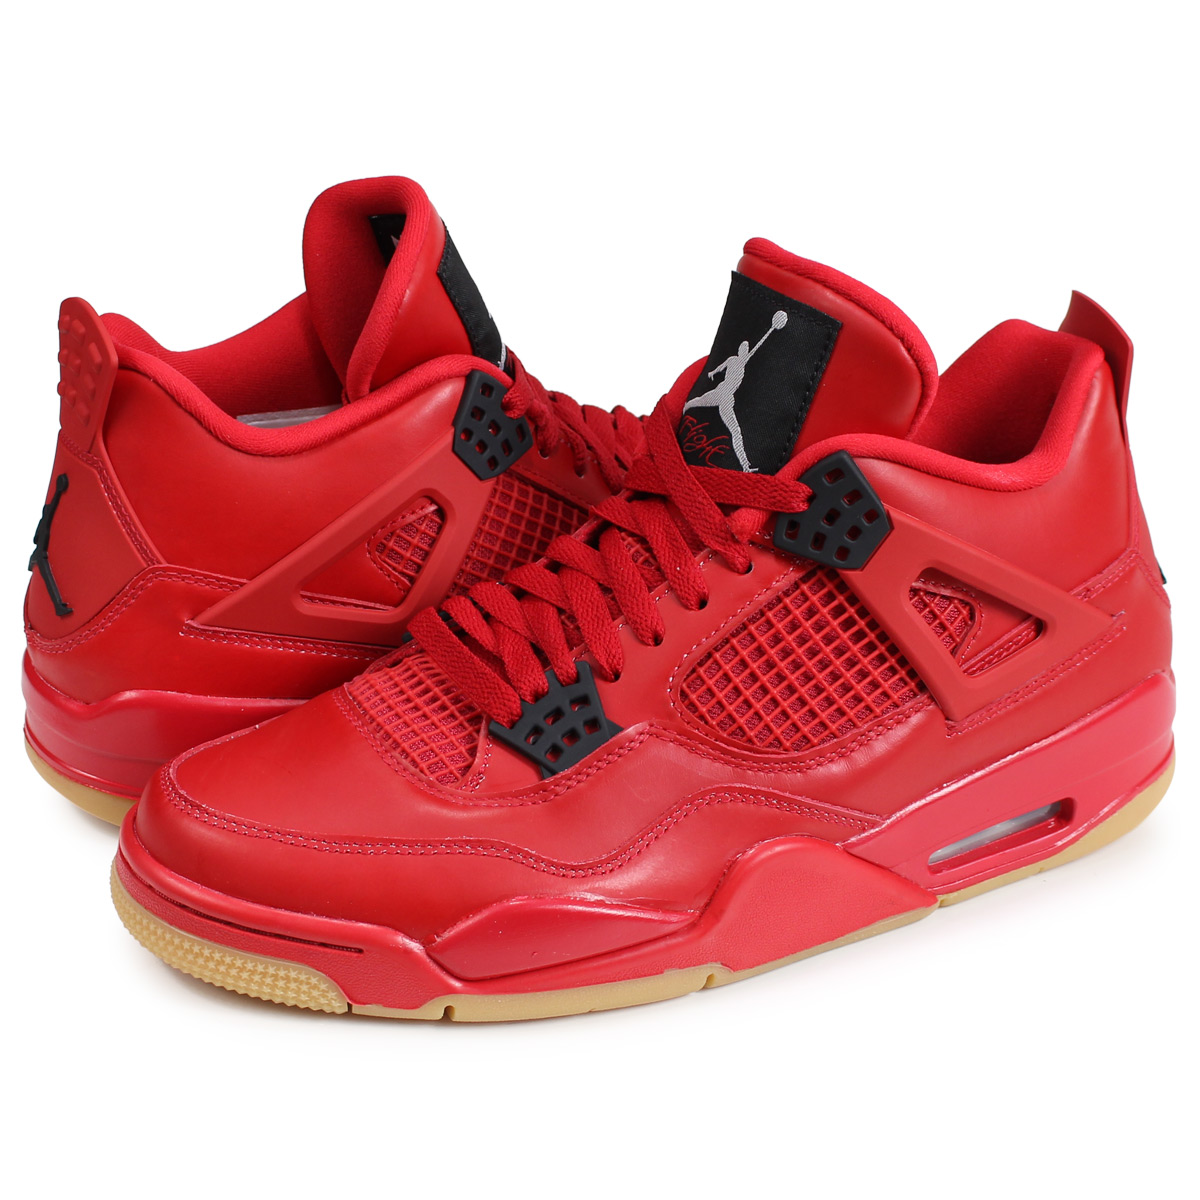 5571ca30ecb3 Nike NIKE Air Jordan 4 nostalgic sneakers Lady s men WMNS AIR JORDAN 4  RETRO NRG SINGLES DAY red AV3914-600  load planned Shinnyu load in  reservation ...